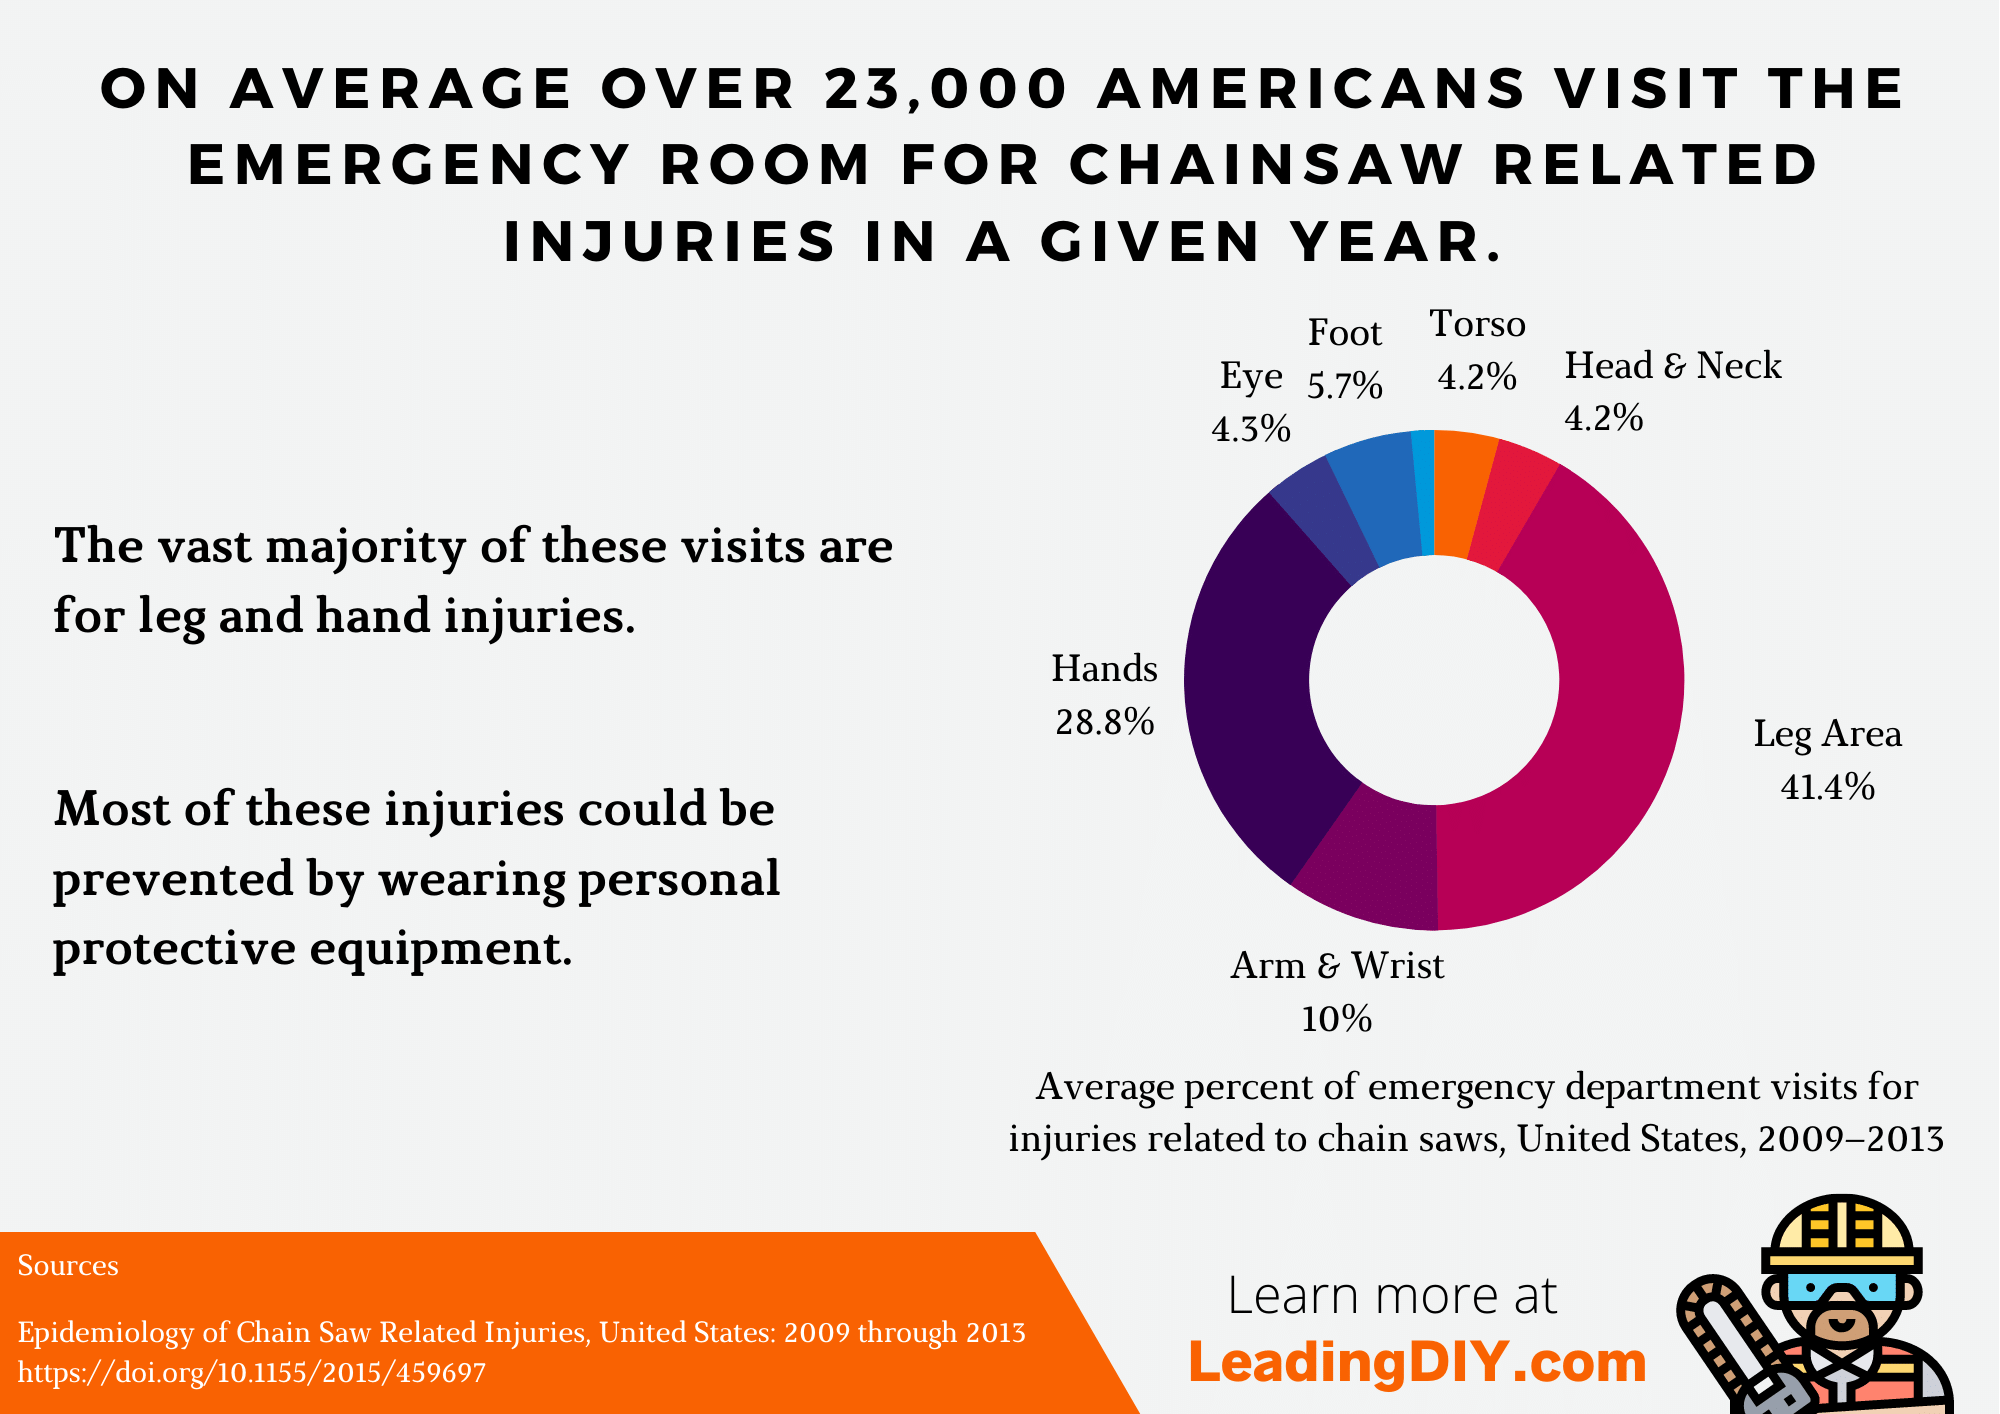 Infographic text: On average over 23,000 Americans visit the emergency room for a chainsaw related injury each year. The vast majority of these are for leg or hand hand injuries. Most of these injuries could be prevented by wearing personal protective equipment. Pie chart: Average percent of emergency department visits for injuries related to chainsaws, United States, 2009-2013